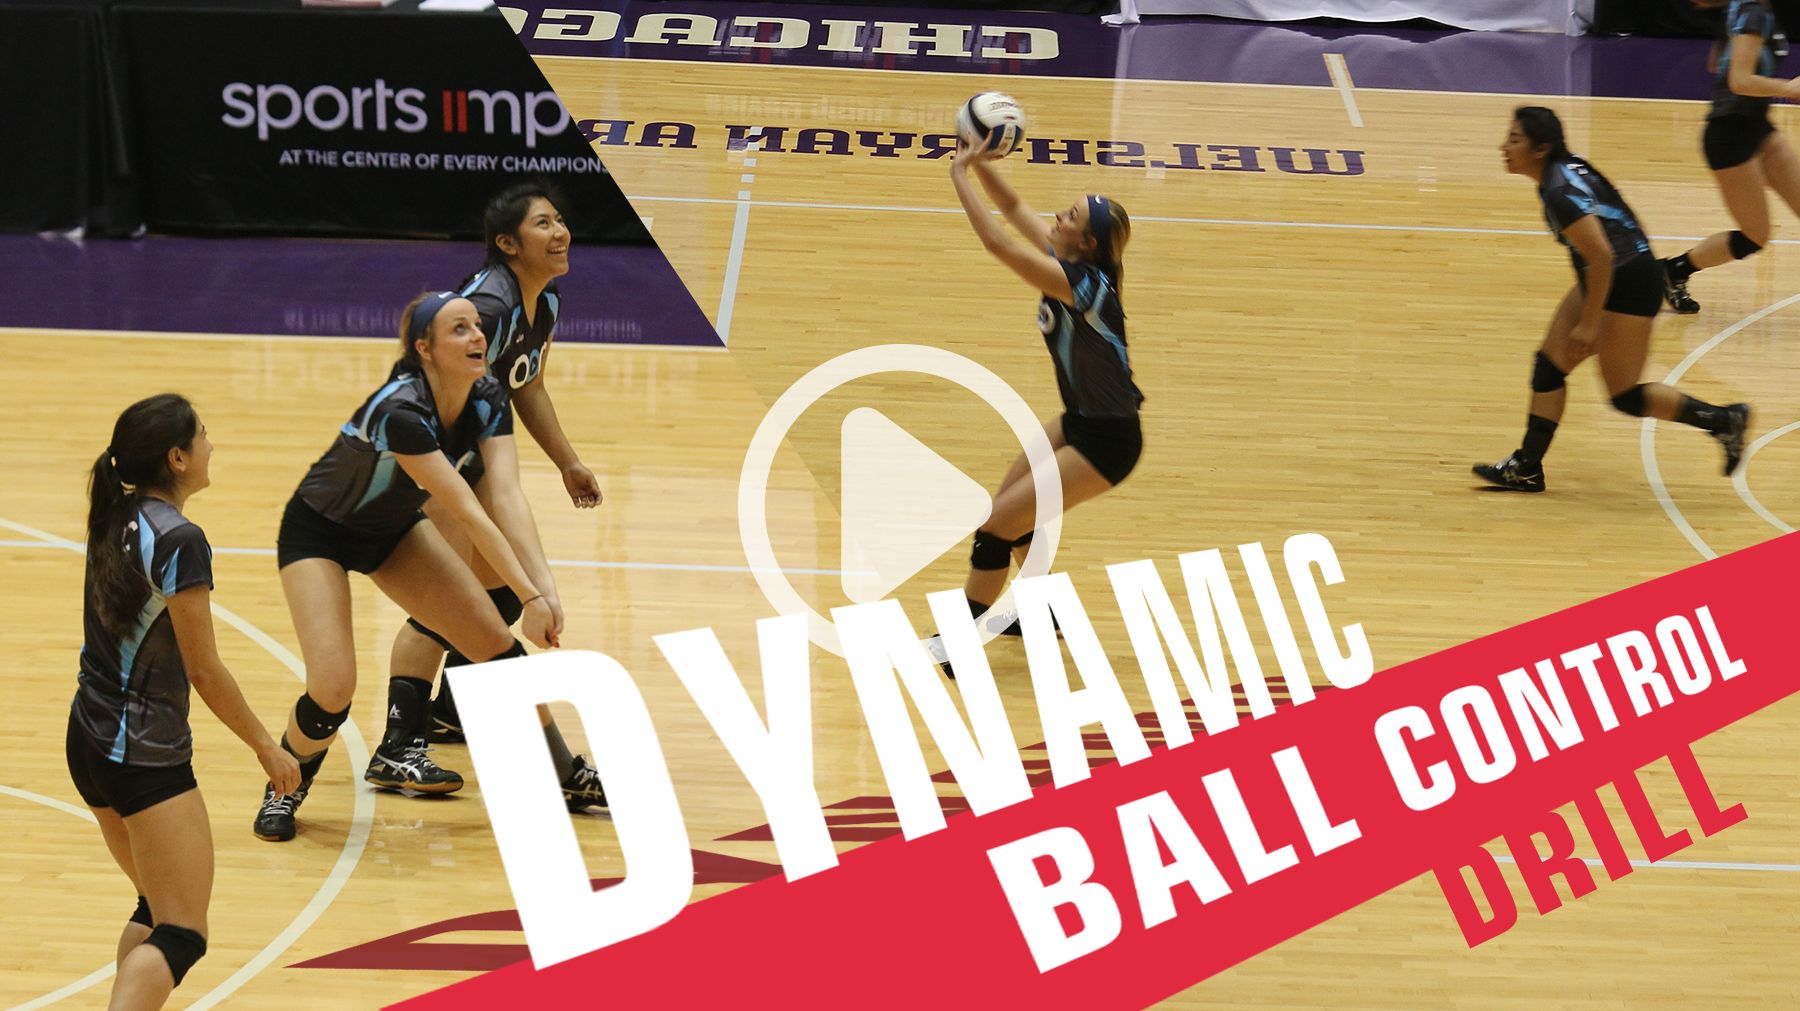 Dynamic Ball Control Drill The Art Of Coaching Volleyball Coaching Volleyball Volleyball Workouts Volleyball Conditioning